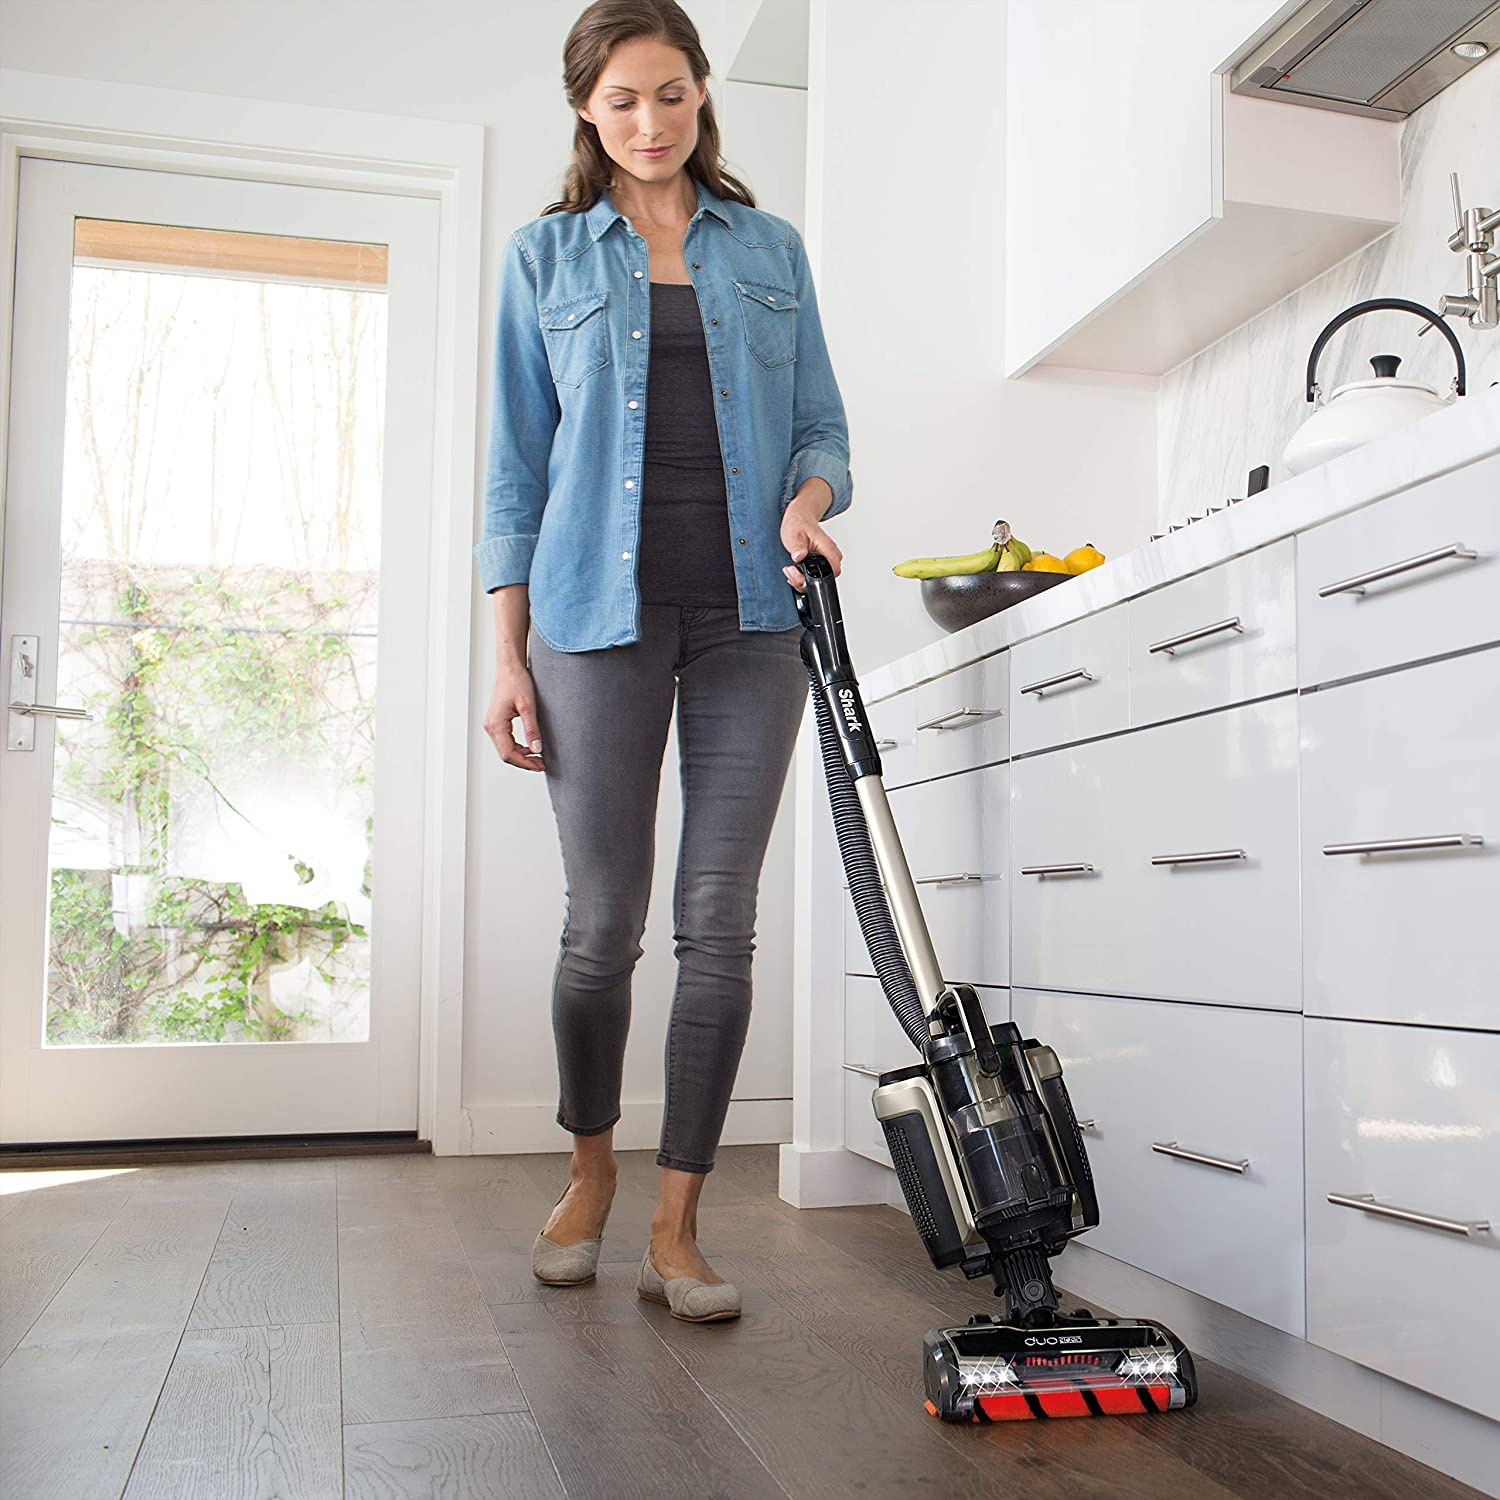 ION P50 Lightweight Cordless Upright Vacuum with HEPA Filter, Handheld Vacuum Mode, and Shark DuoClean for Carpet and Hardfloor Cleaning IC162